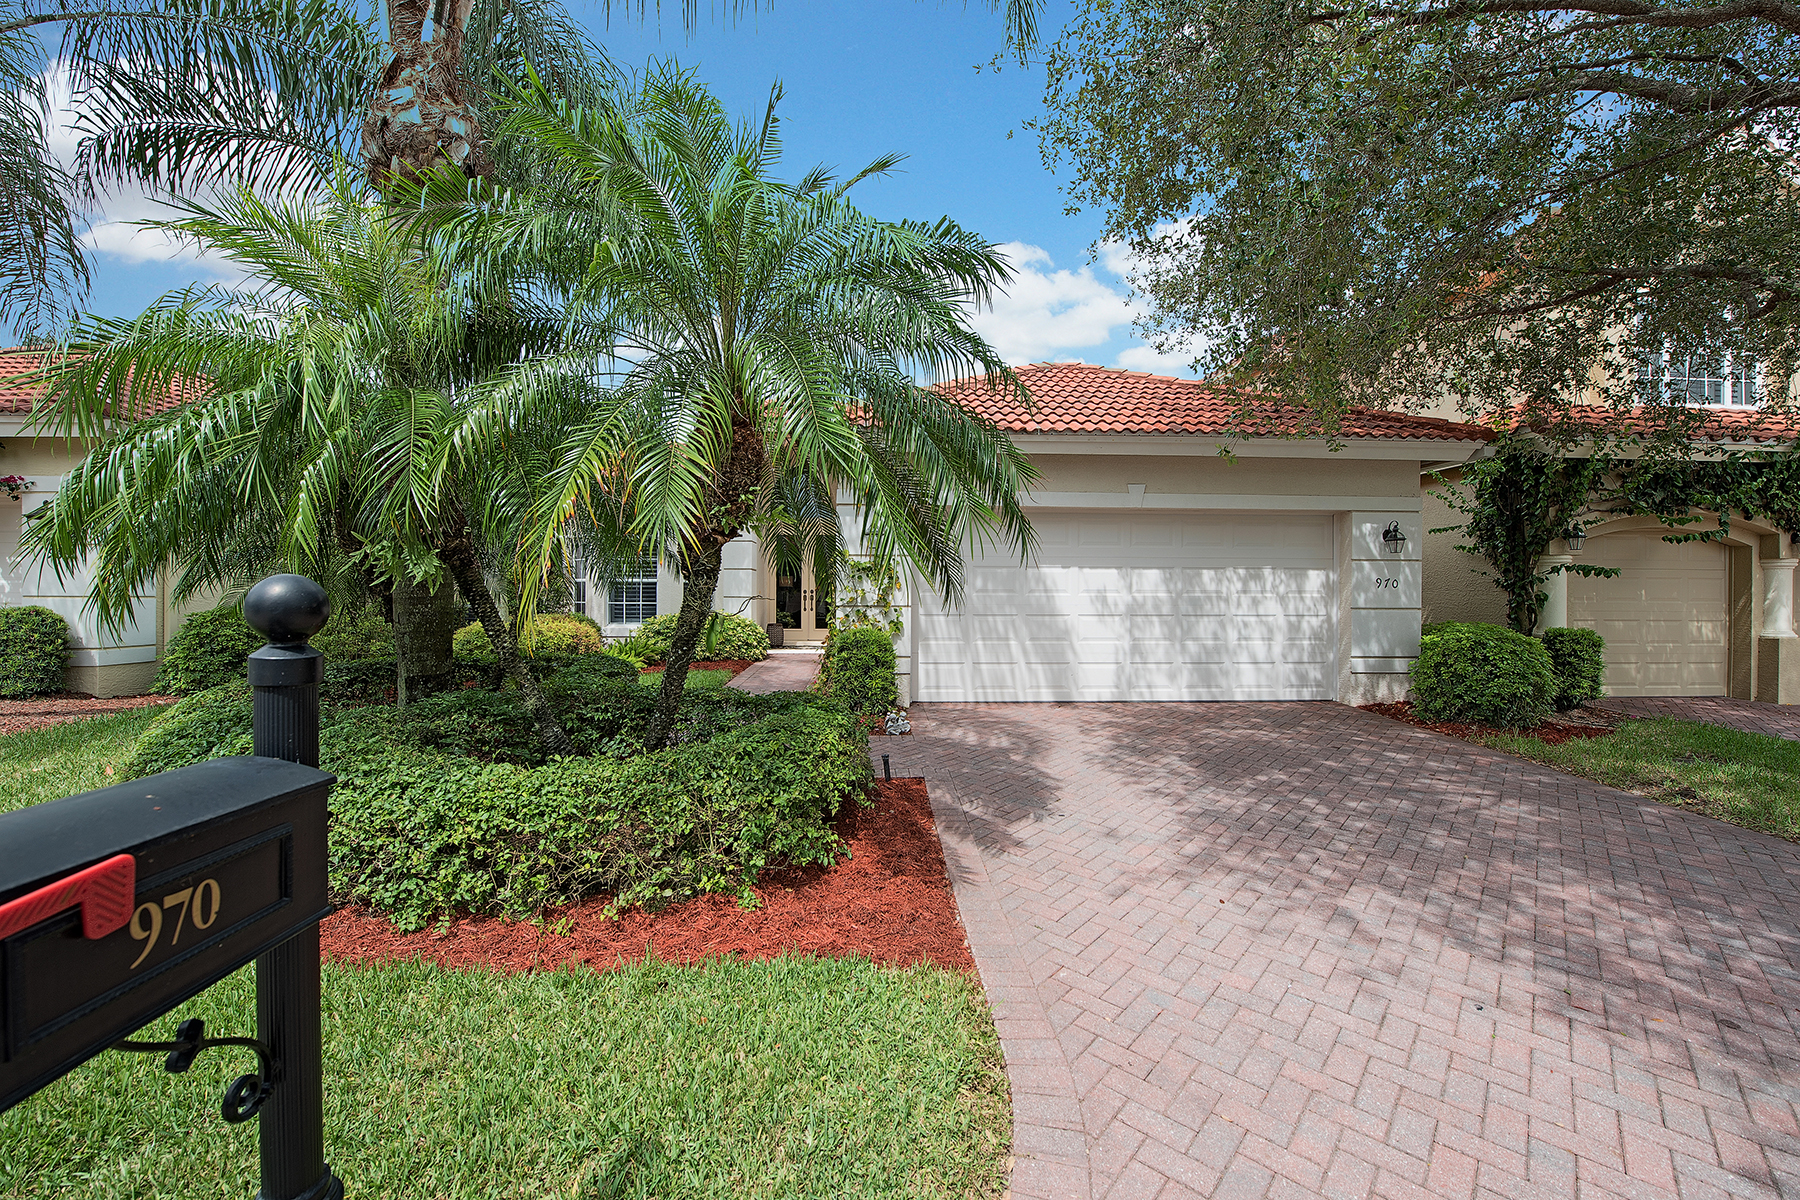 Single Family Home for Sale at VINEYARDS 970 Fountain Naples, Florida 34119 United States